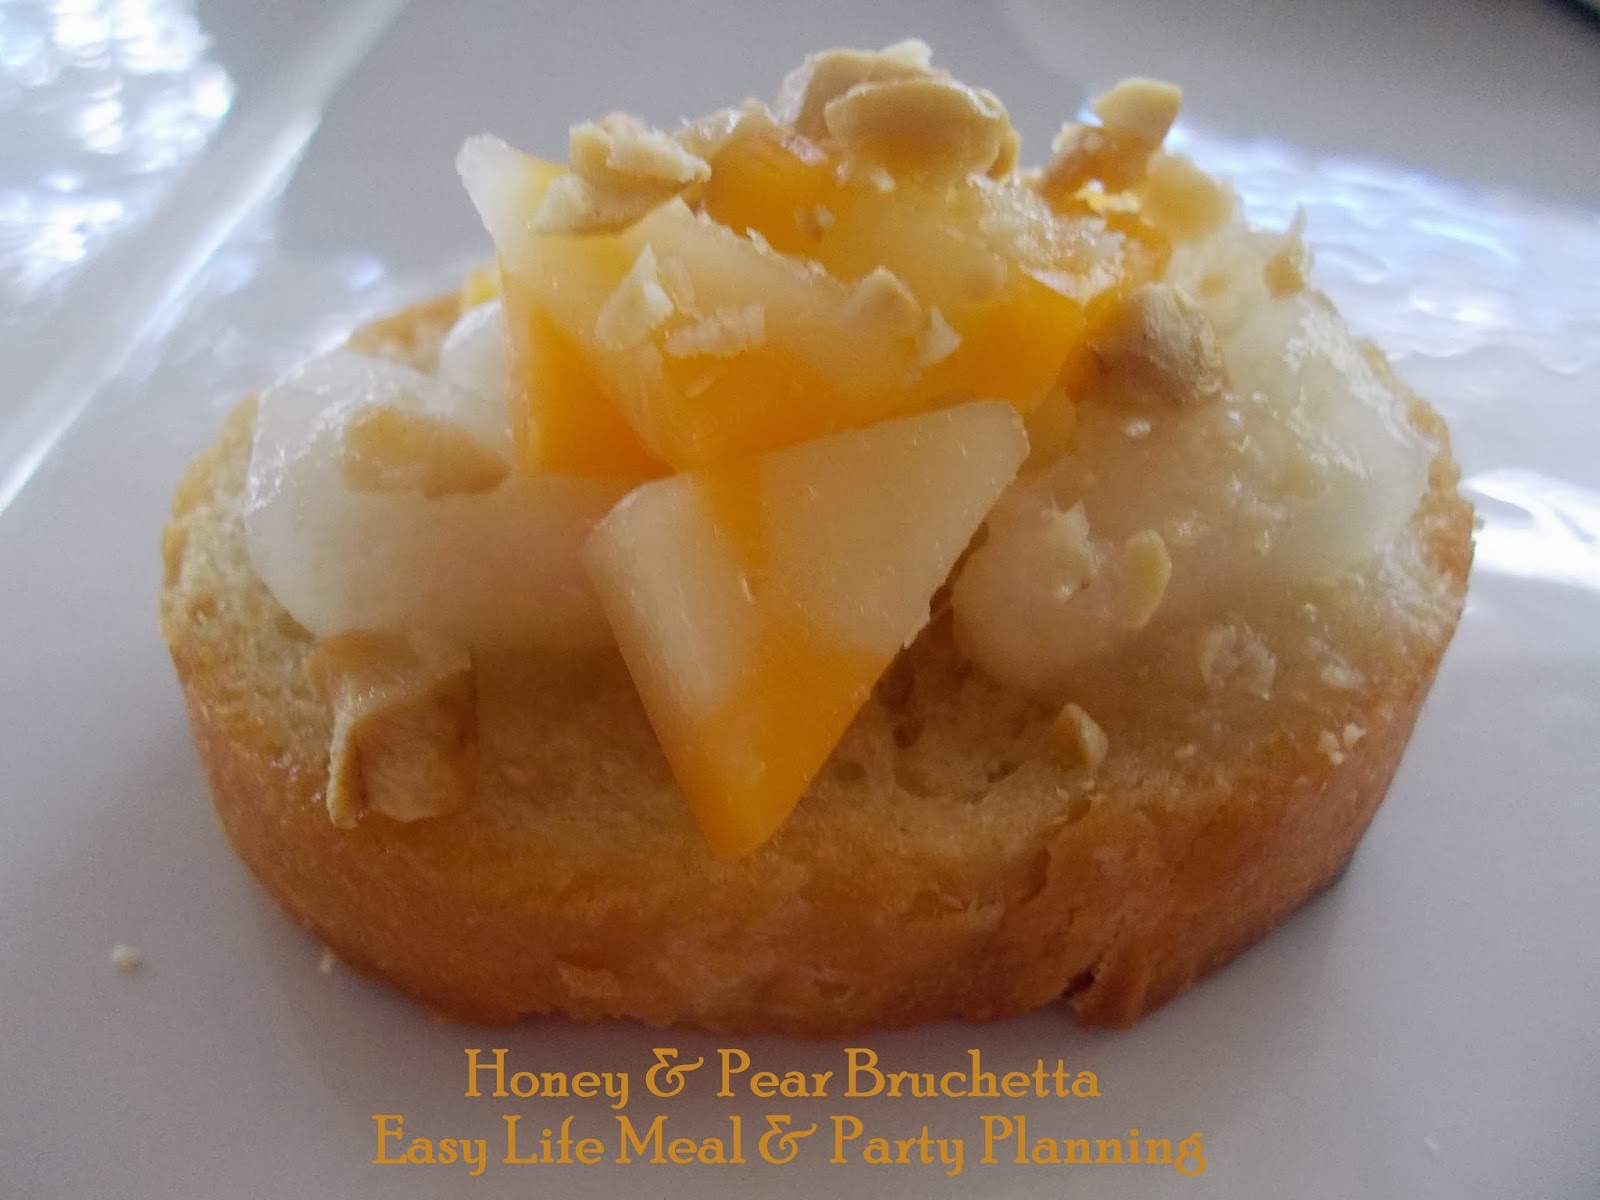 Honey & Pear Bruschetta: Easy Lief Meal & Party Planning